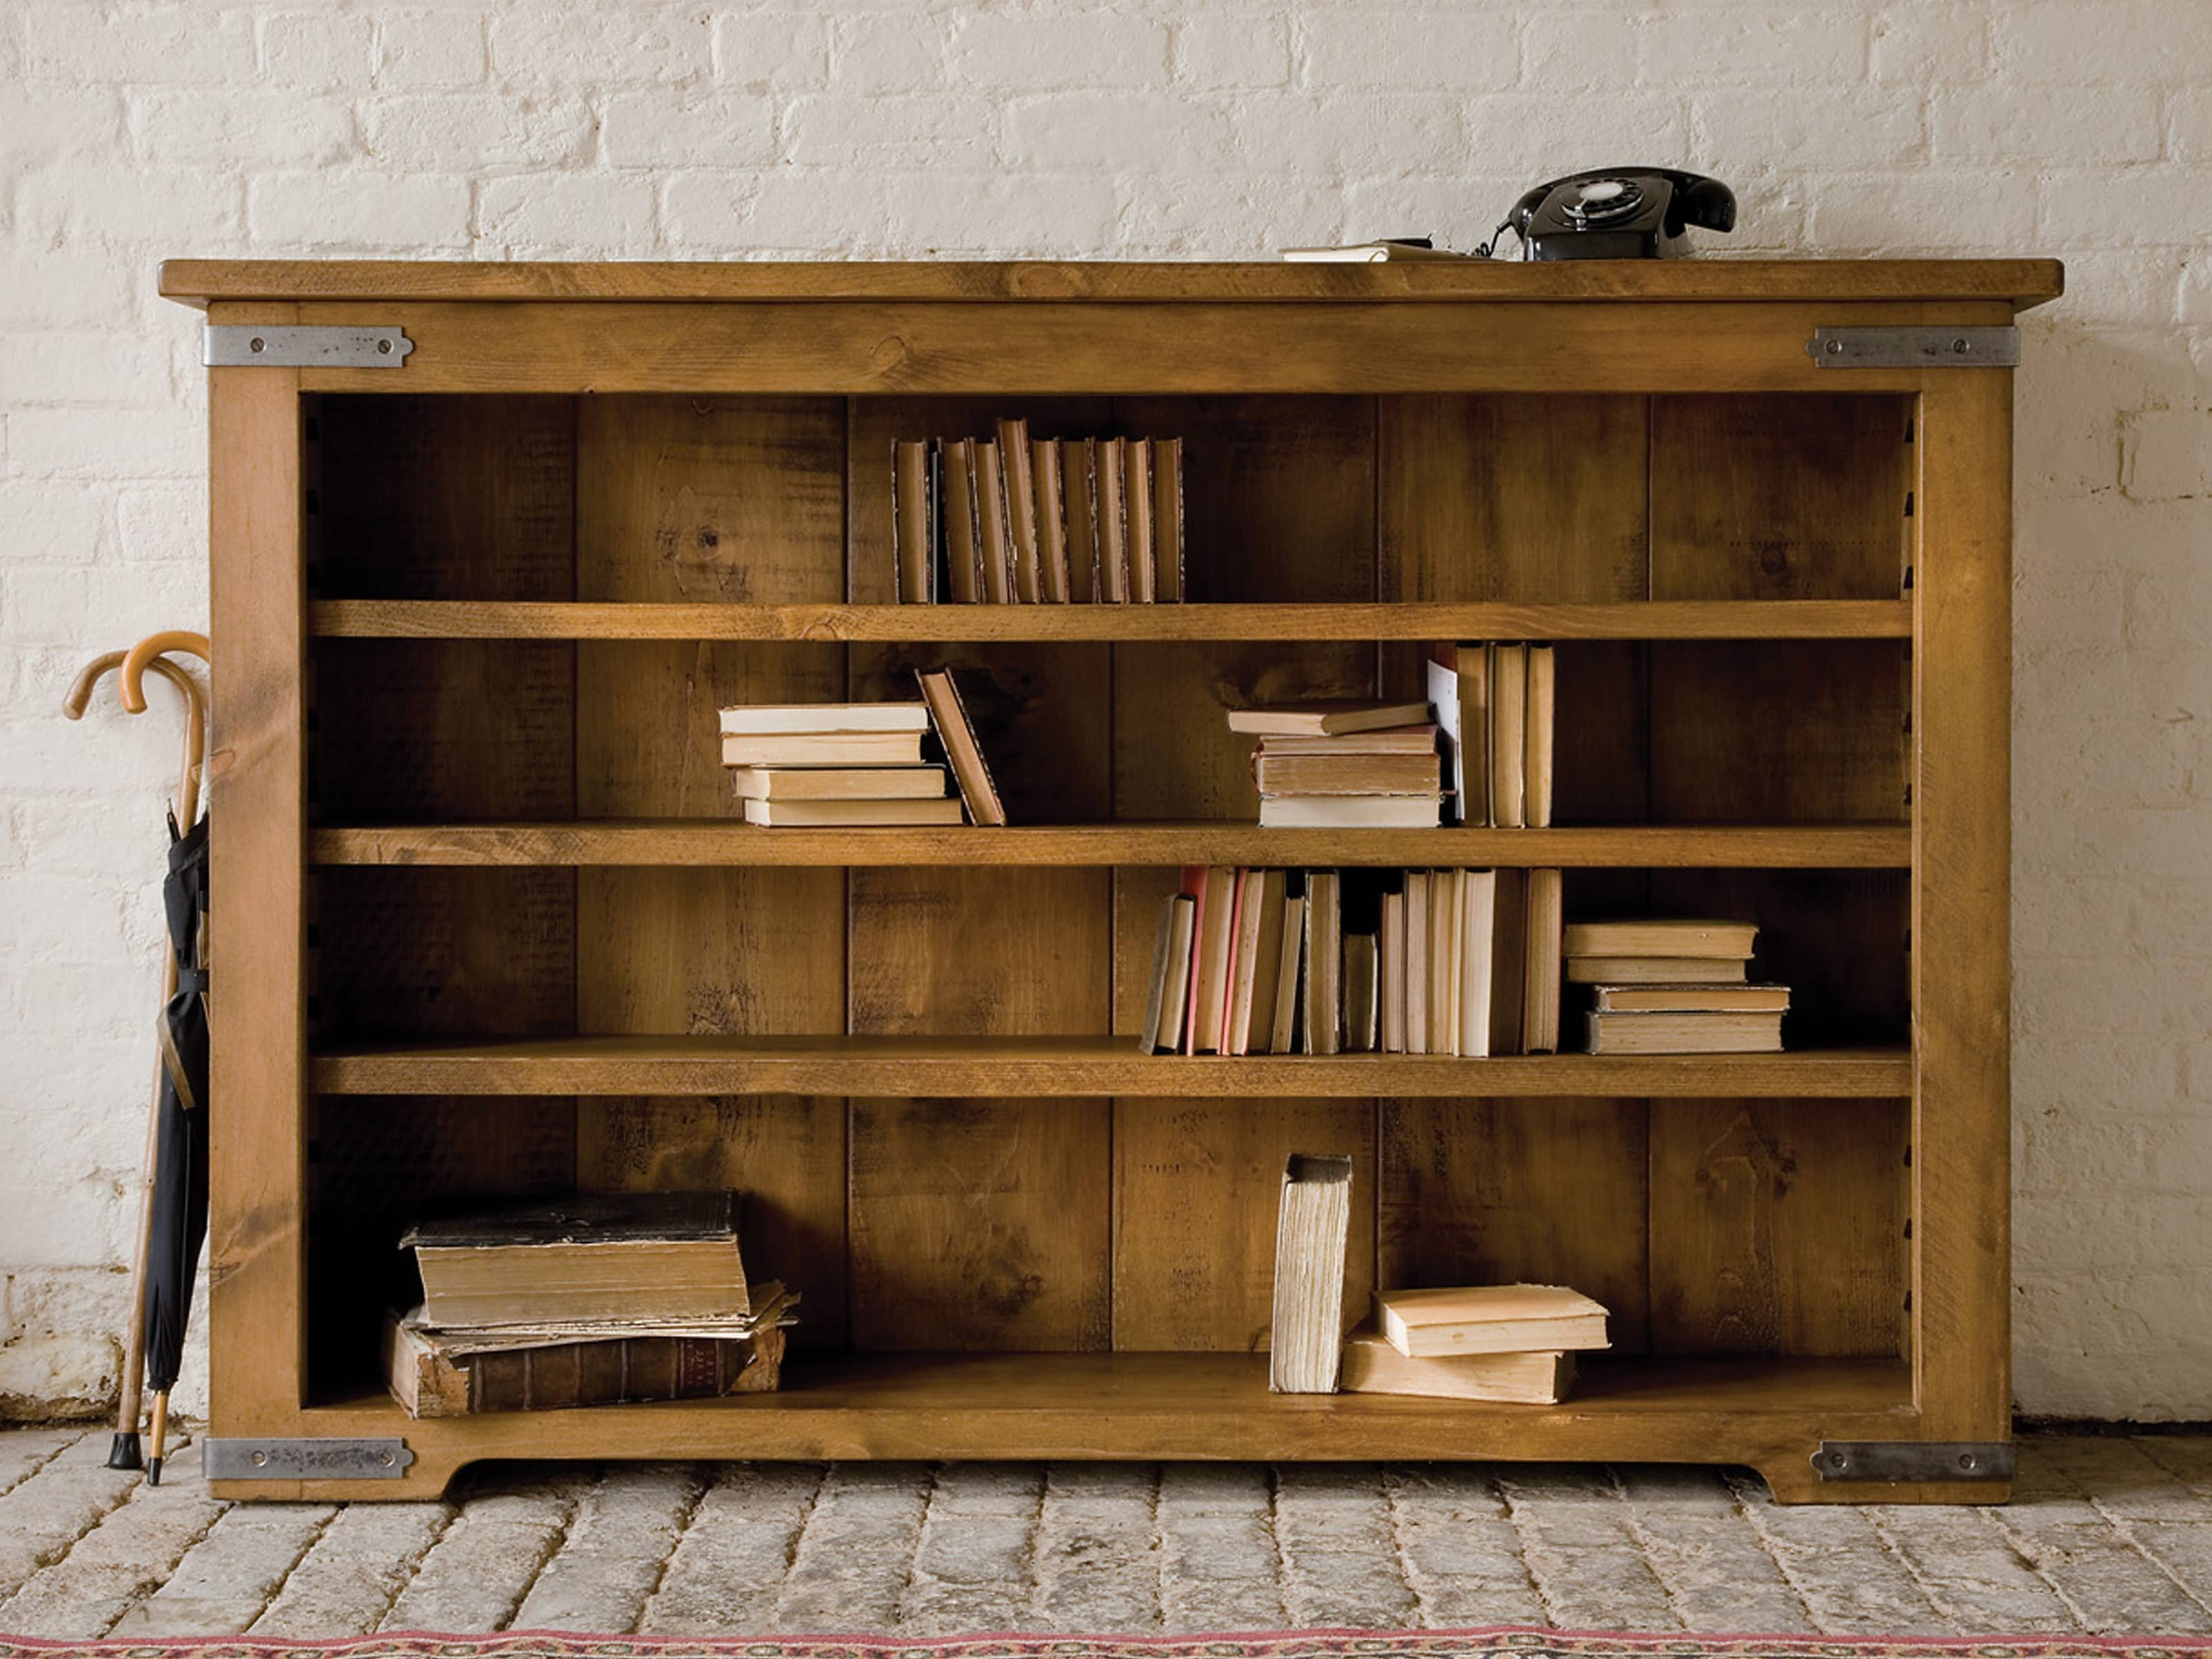 Wooden Bookcases Pertaining To Newest Bookcases Ideas: Best Choice Bookcases Wood Ever Mission Style (View 13 of 15)